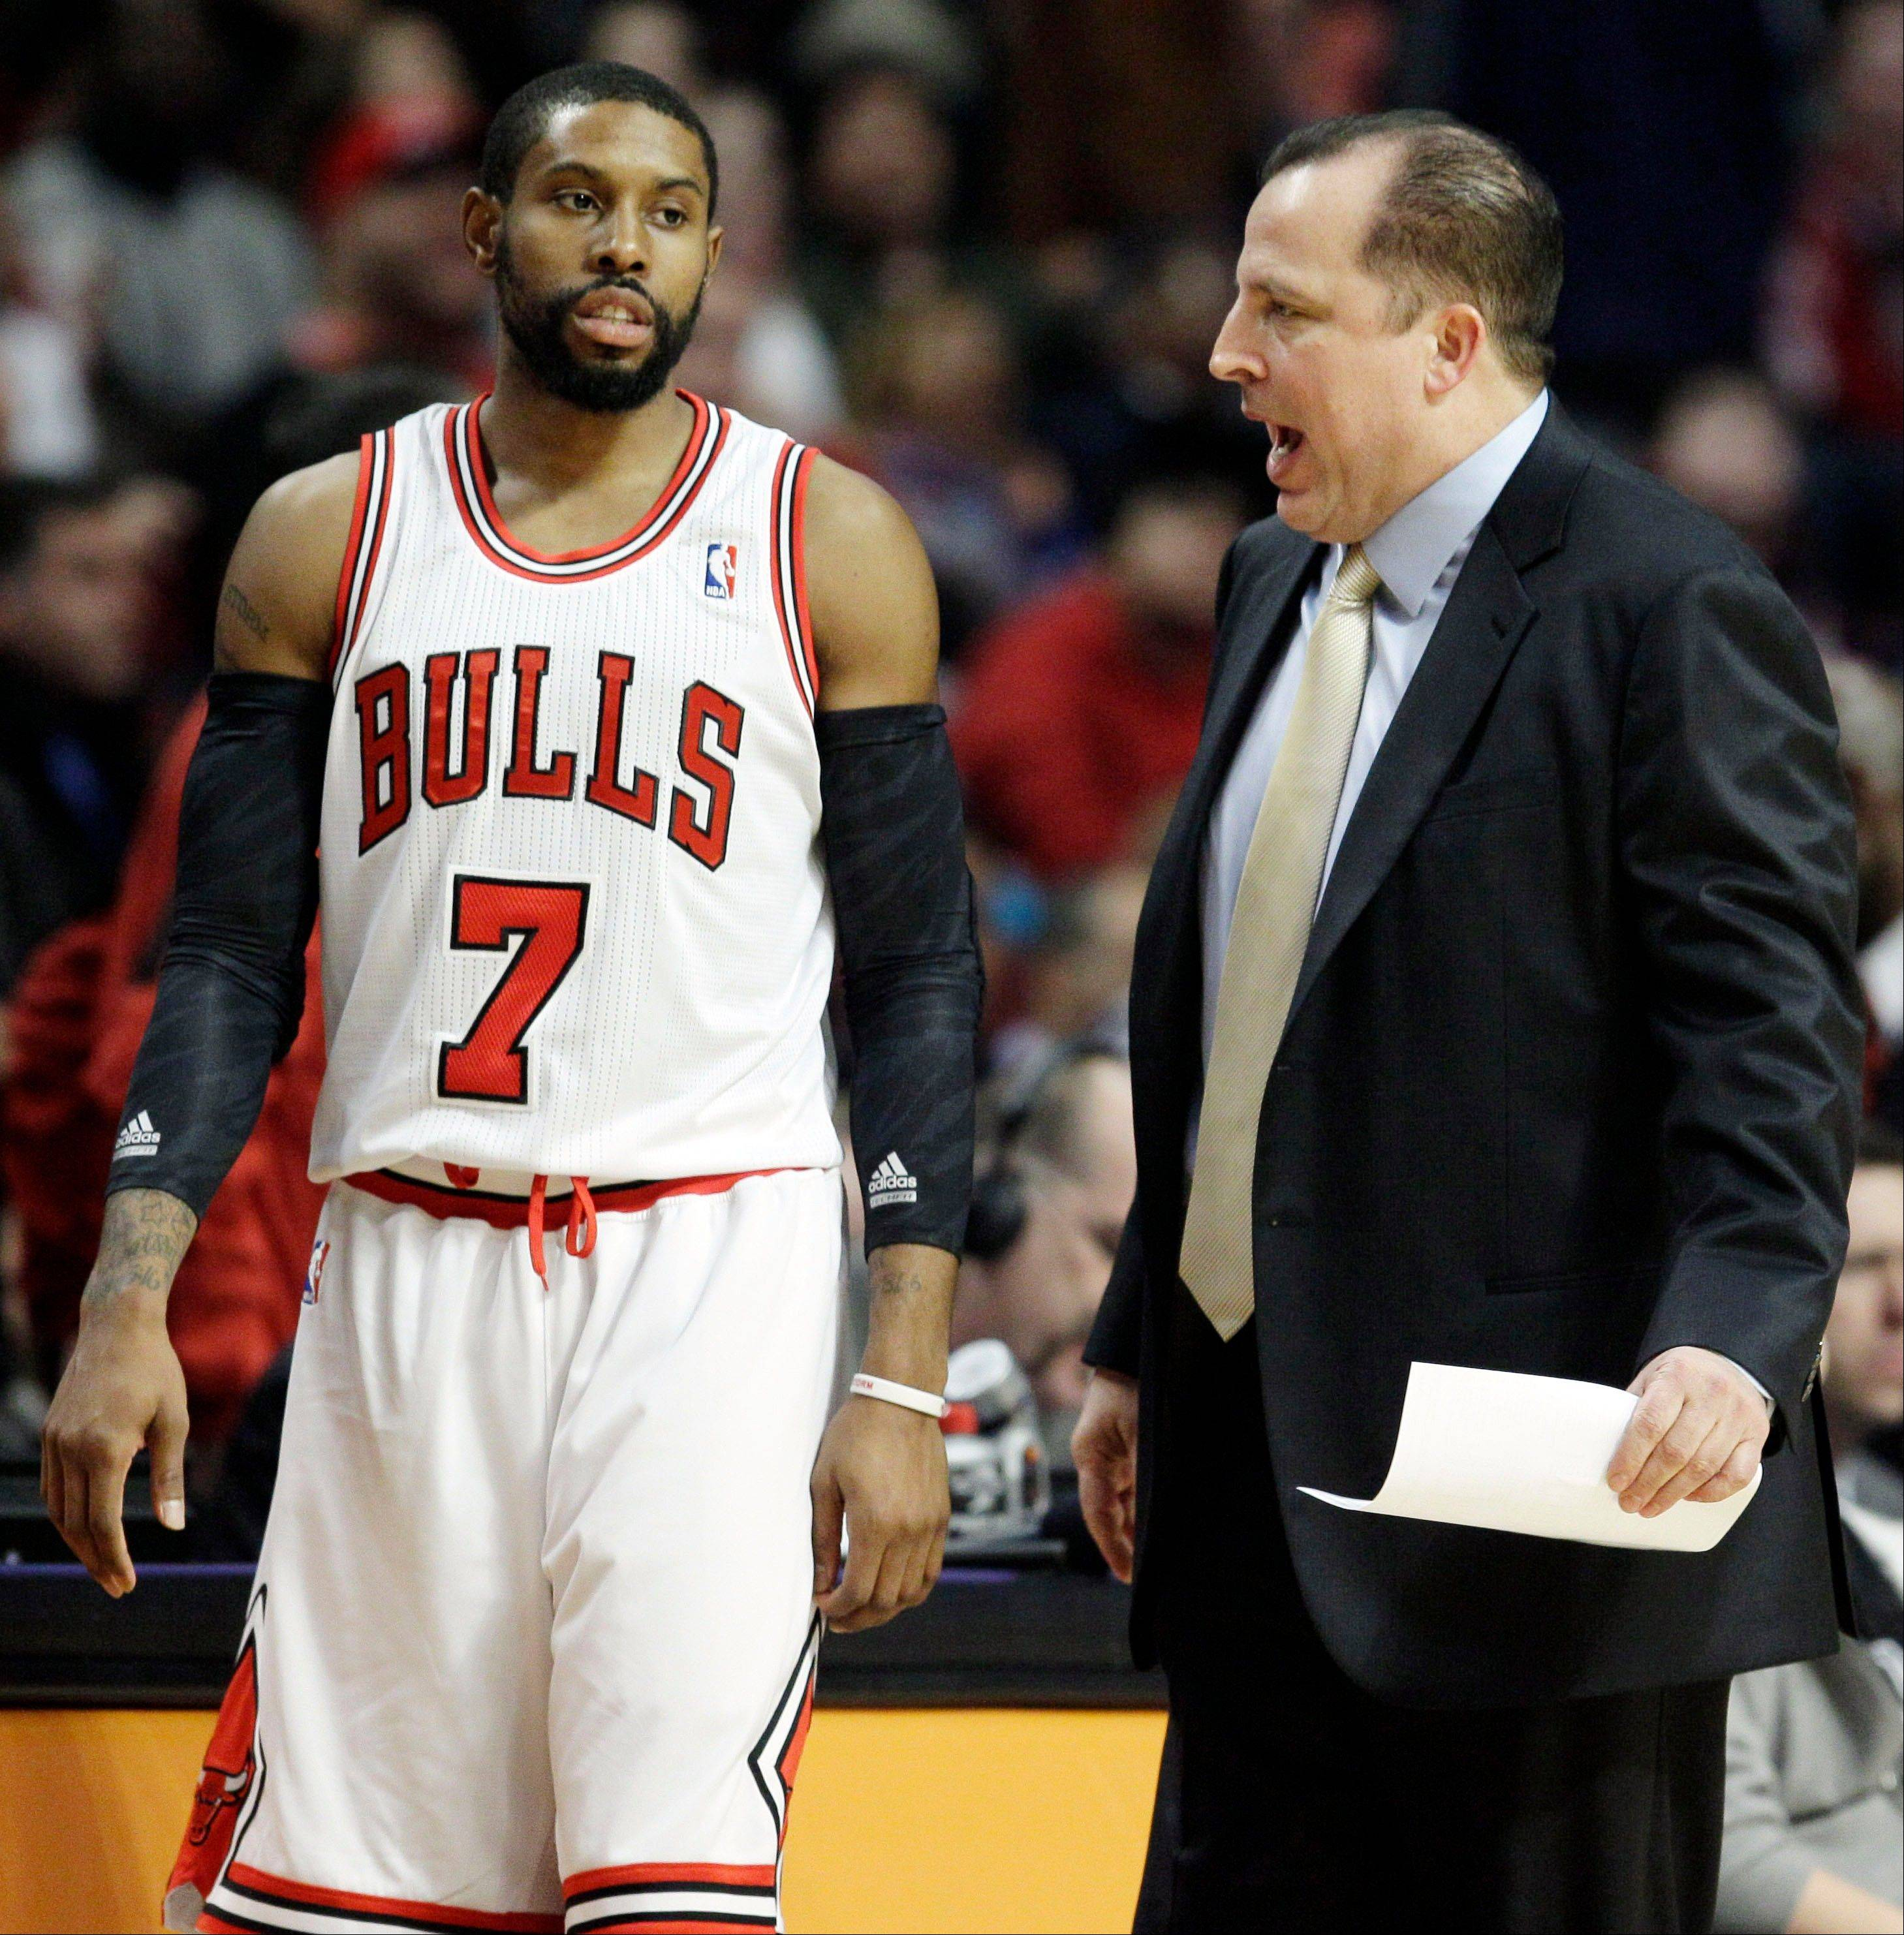 Chicago Bulls head coach Tom Thibodeau, right, talks to C.J. Watson (7) during the first quarter of an NBA basketball game against the Milwaukee Bucks in Chicago on Friday, Jan. 27, 2012.